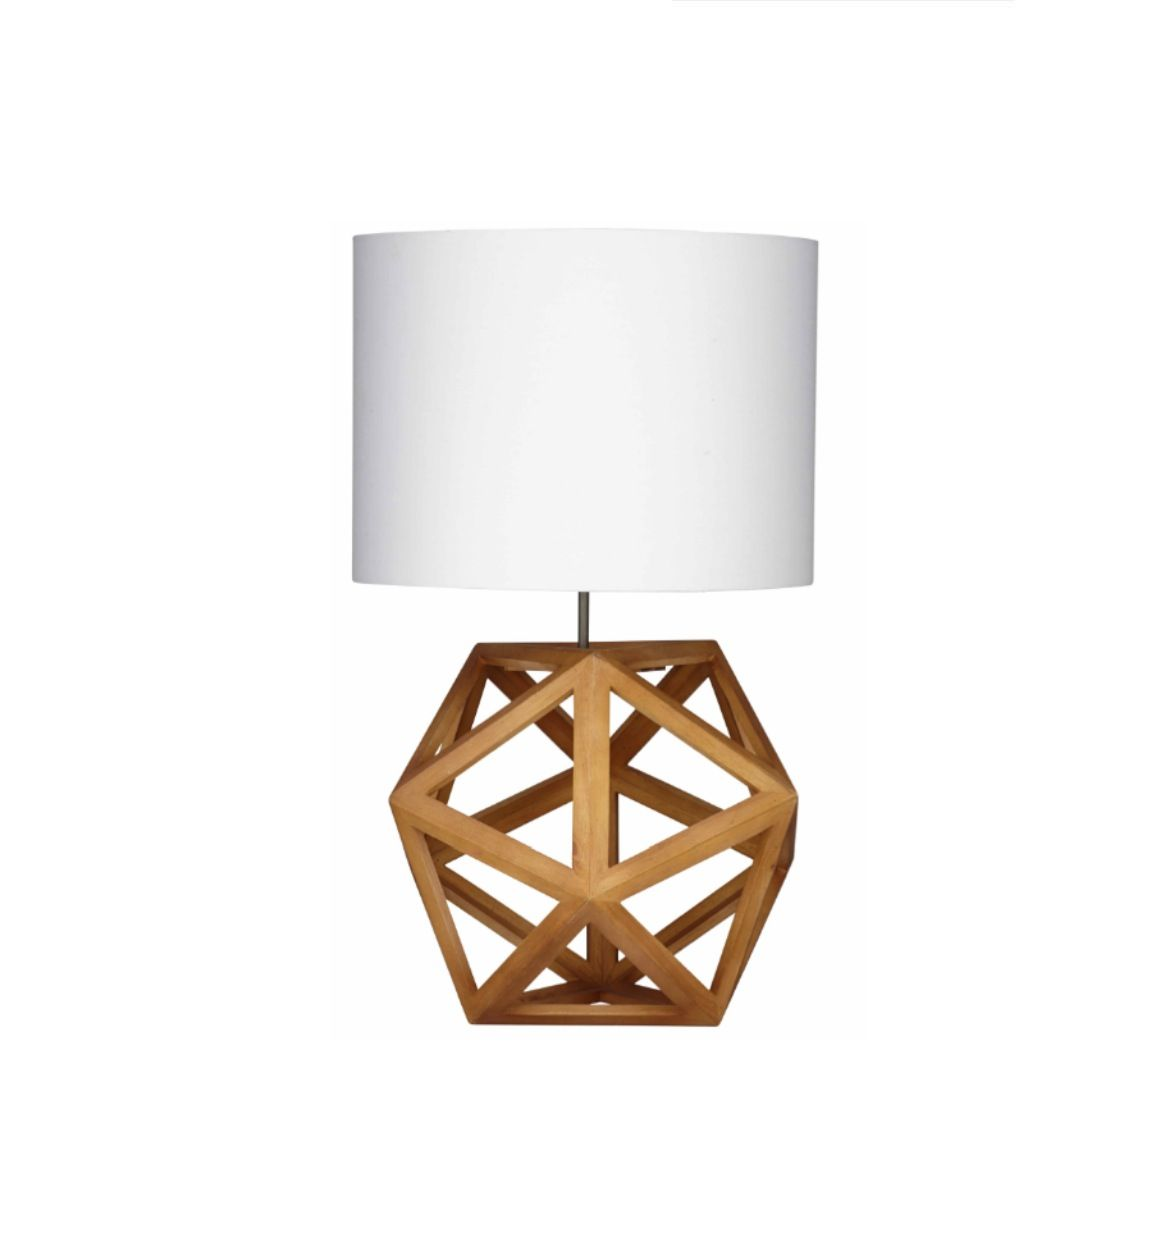 Hexagon table lamp natural timber with white shade scandinavian hexagon table lamp natural timber with white shade scandinavian style 21900 aloadofball Images